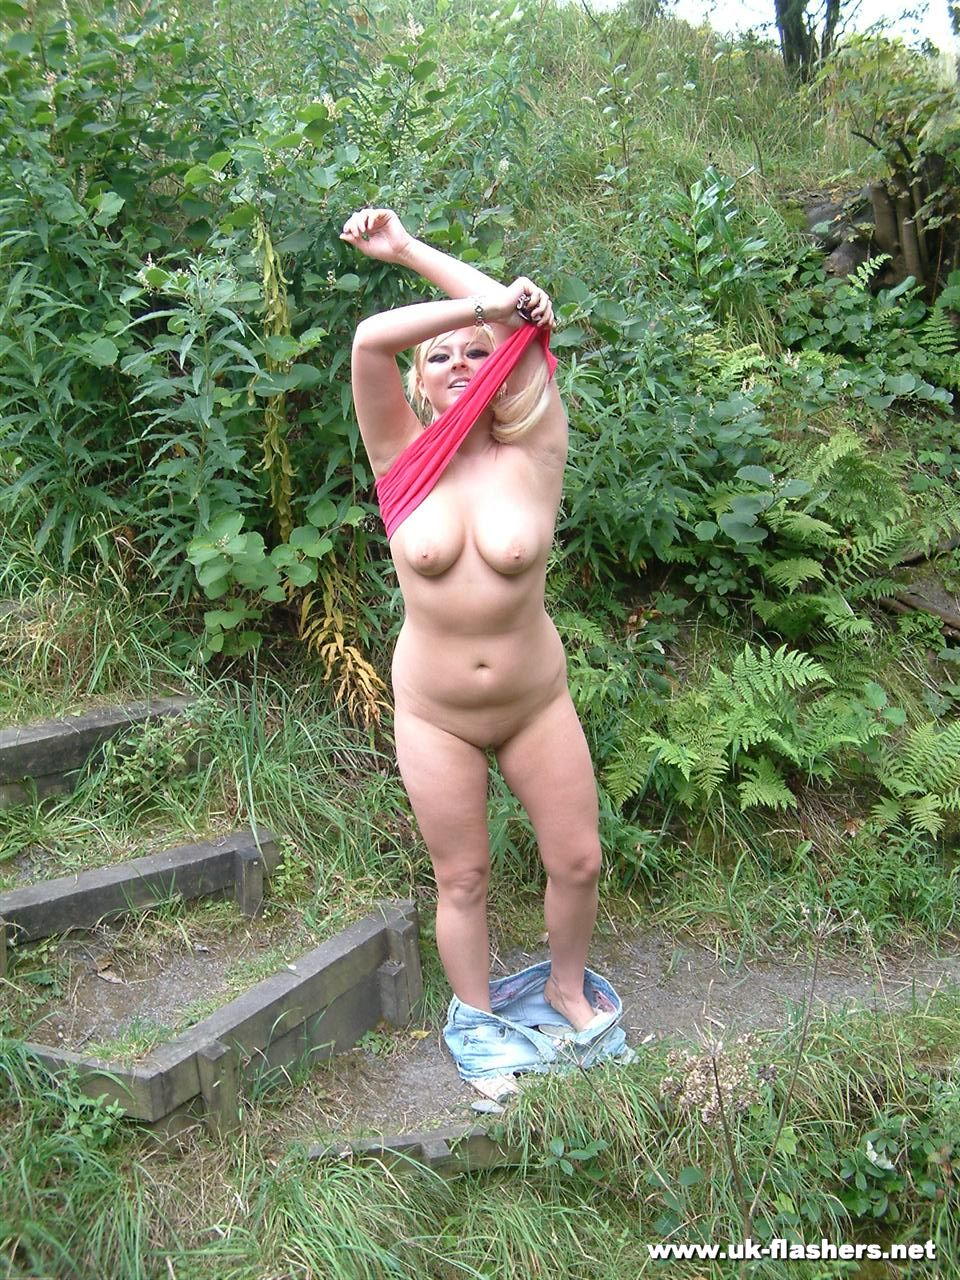 Stripped naked in public video